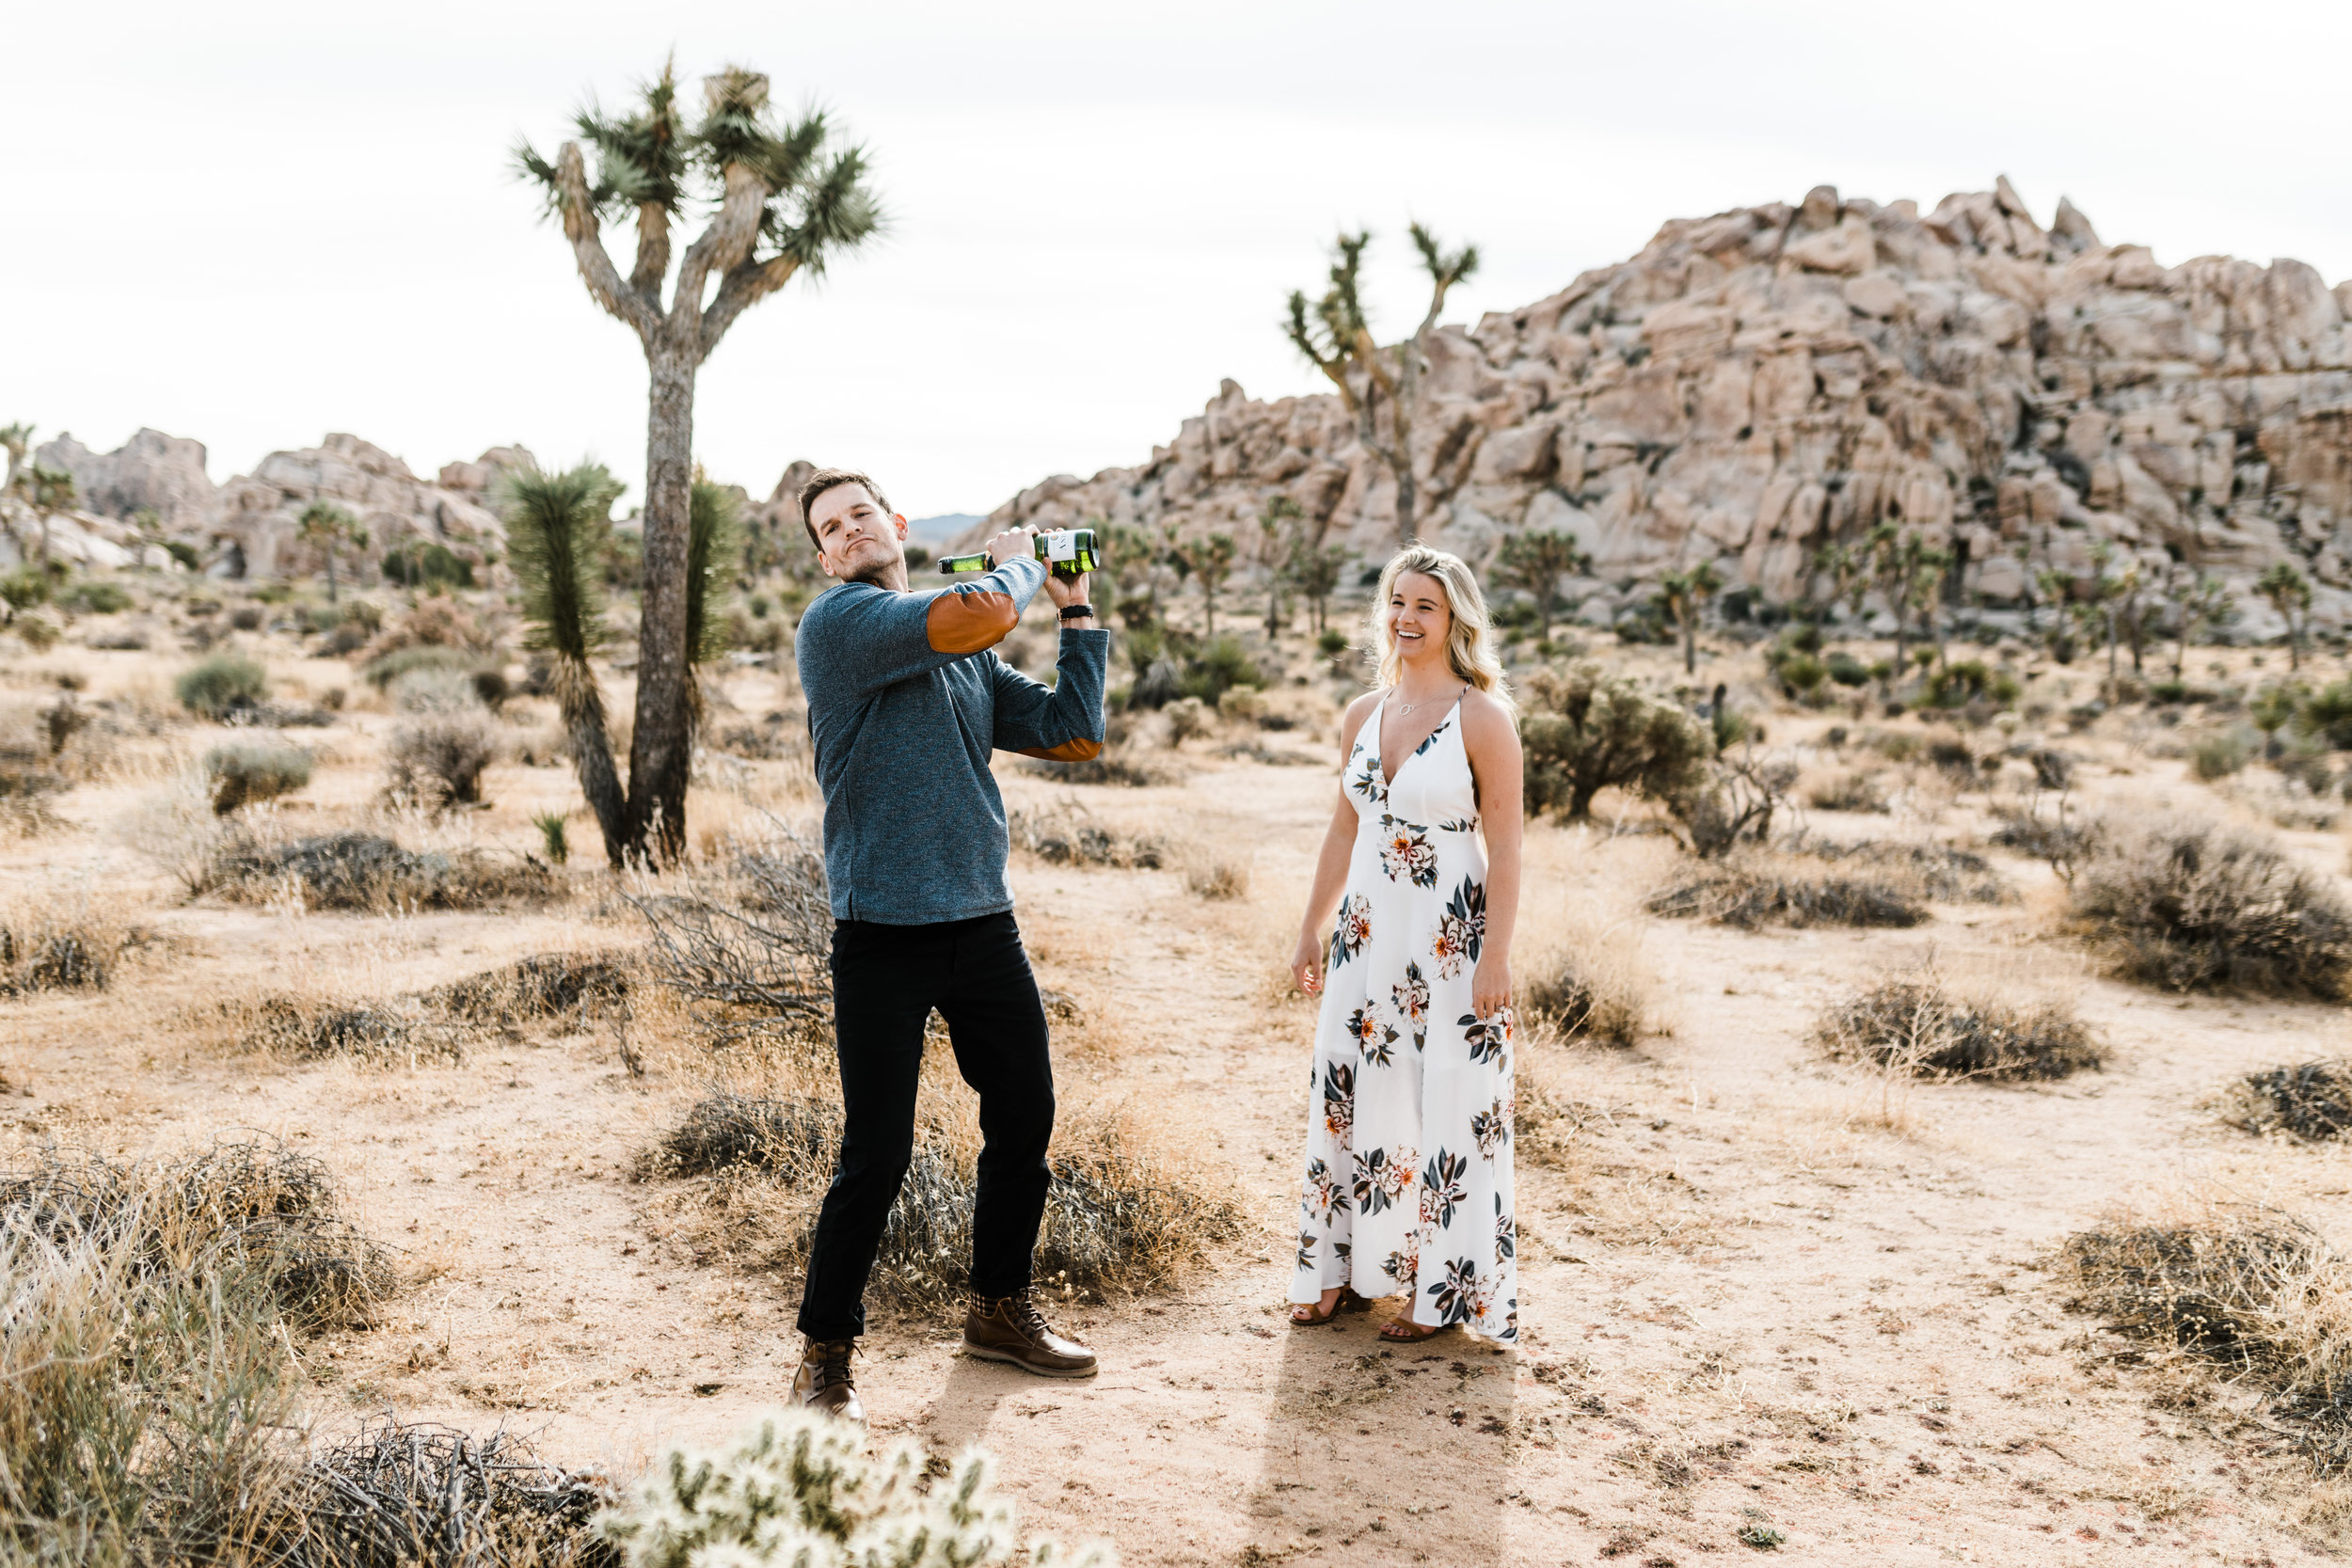 Dano&Andrew-Joshua-Tree-Engagement-Session-CRM-Media-Southern-California-Wedding-Photographer30